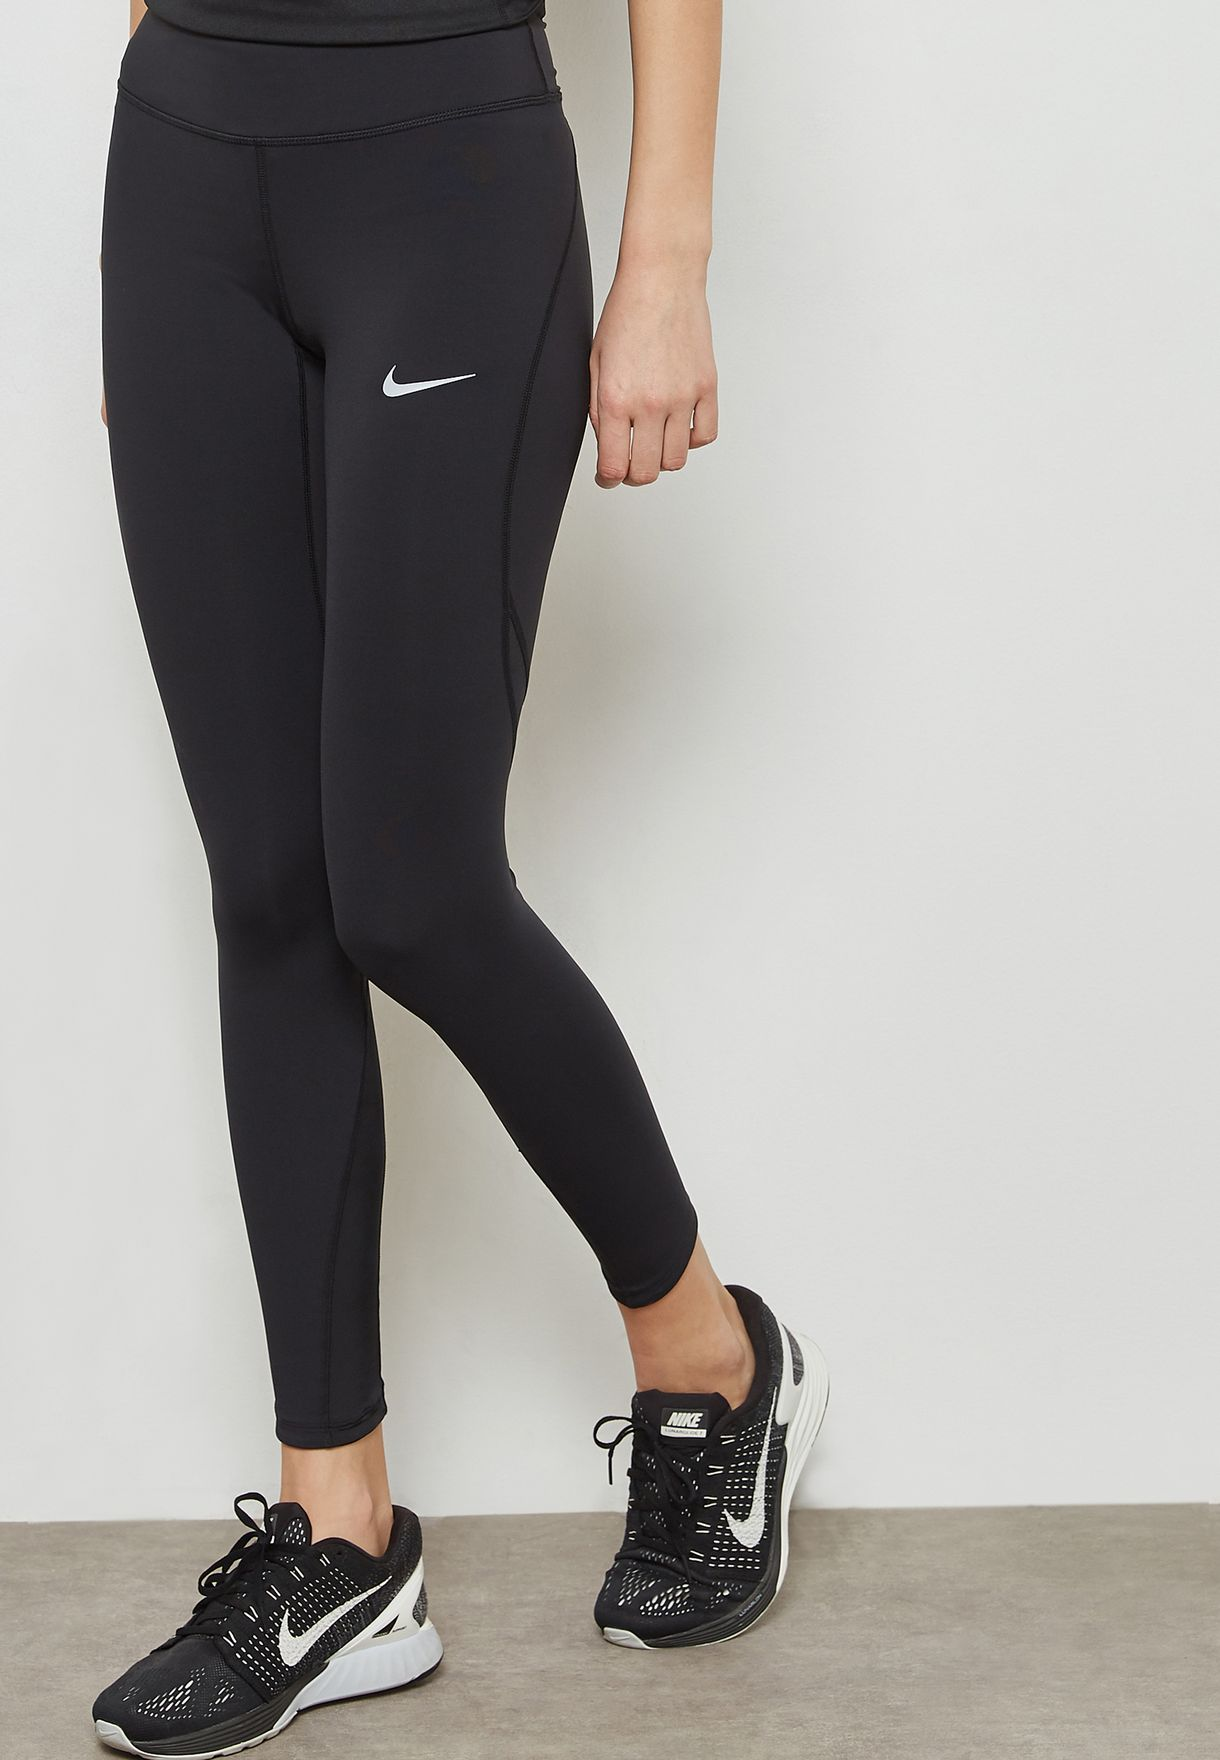 65dee61172b69 Shop Nike black Power Epic Lux Mesh Tights 890305-010 for Women in ...